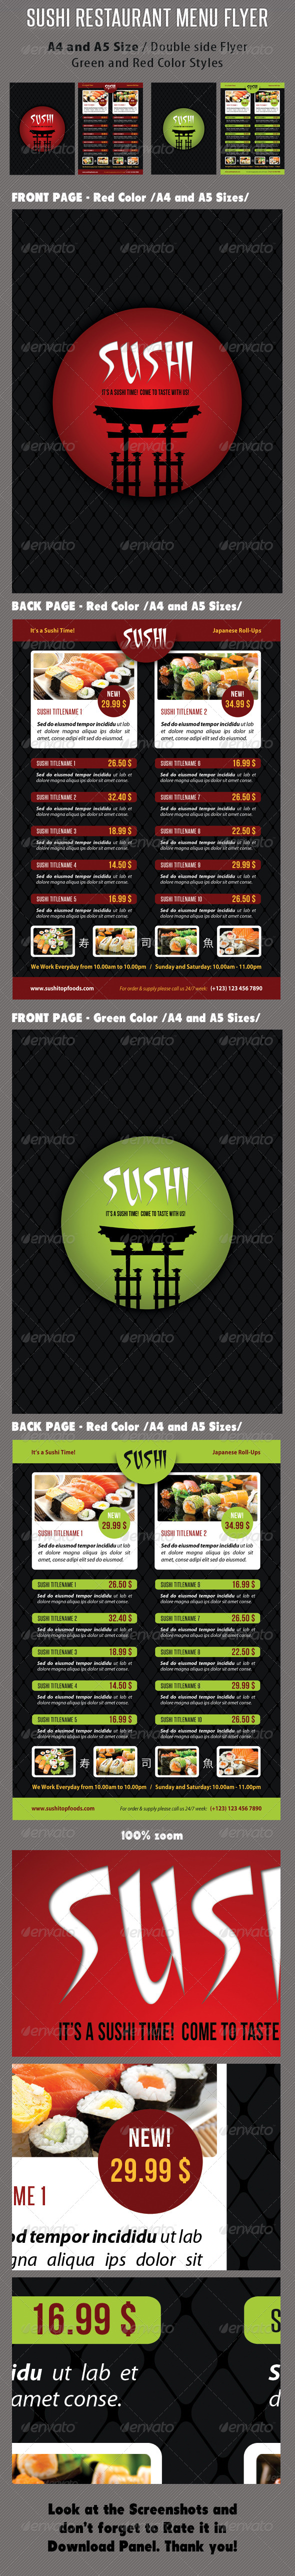 GraphicRiver Sushi Restaurant Menu Flyer V03 8391114